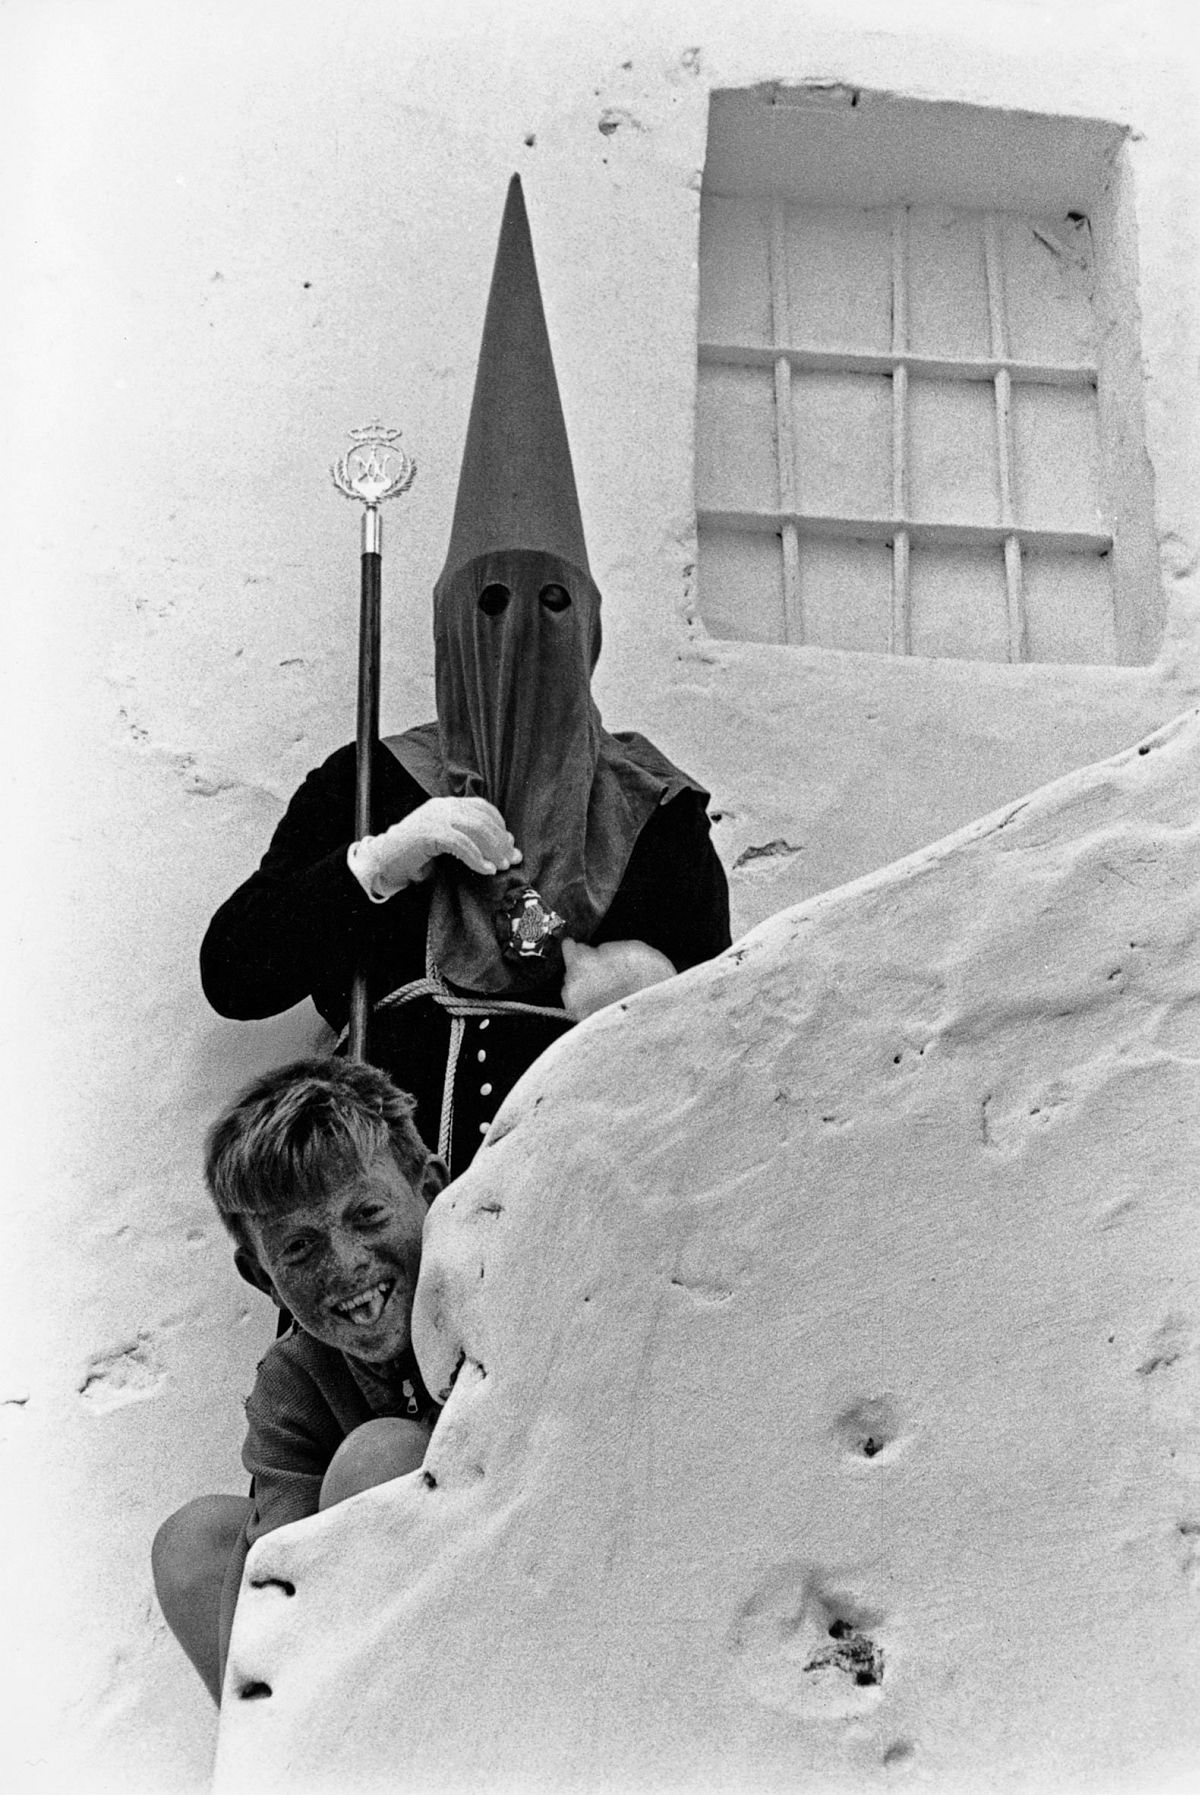 Semana Santa. Tarifa, 1961. By Xavier Miserachs. Photograph © Arena and Mar Miserachs, courtesy via La Fabrica